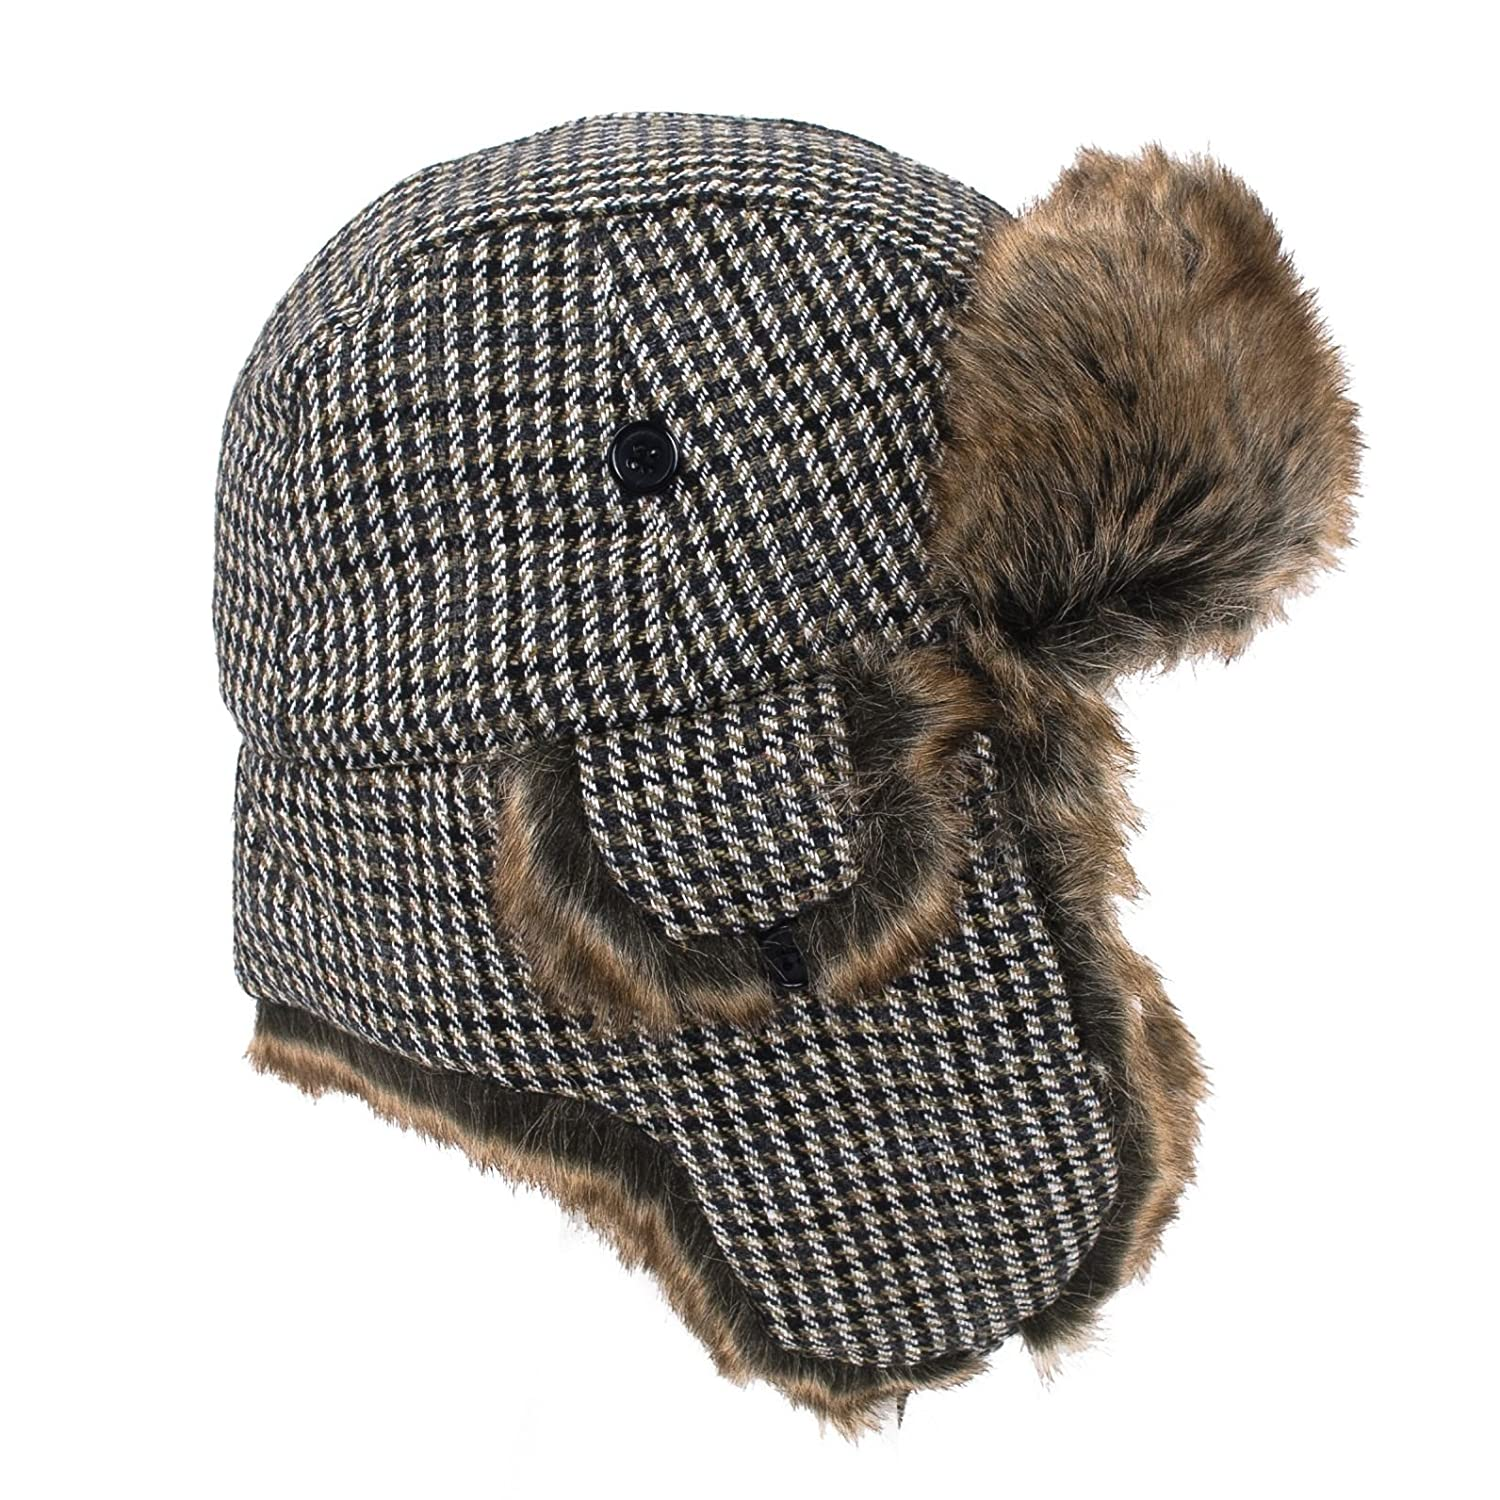 Russian Trapper Aviator Hat Checked Herringbone Tweed Prince of Wales Patterns Hat To Socks